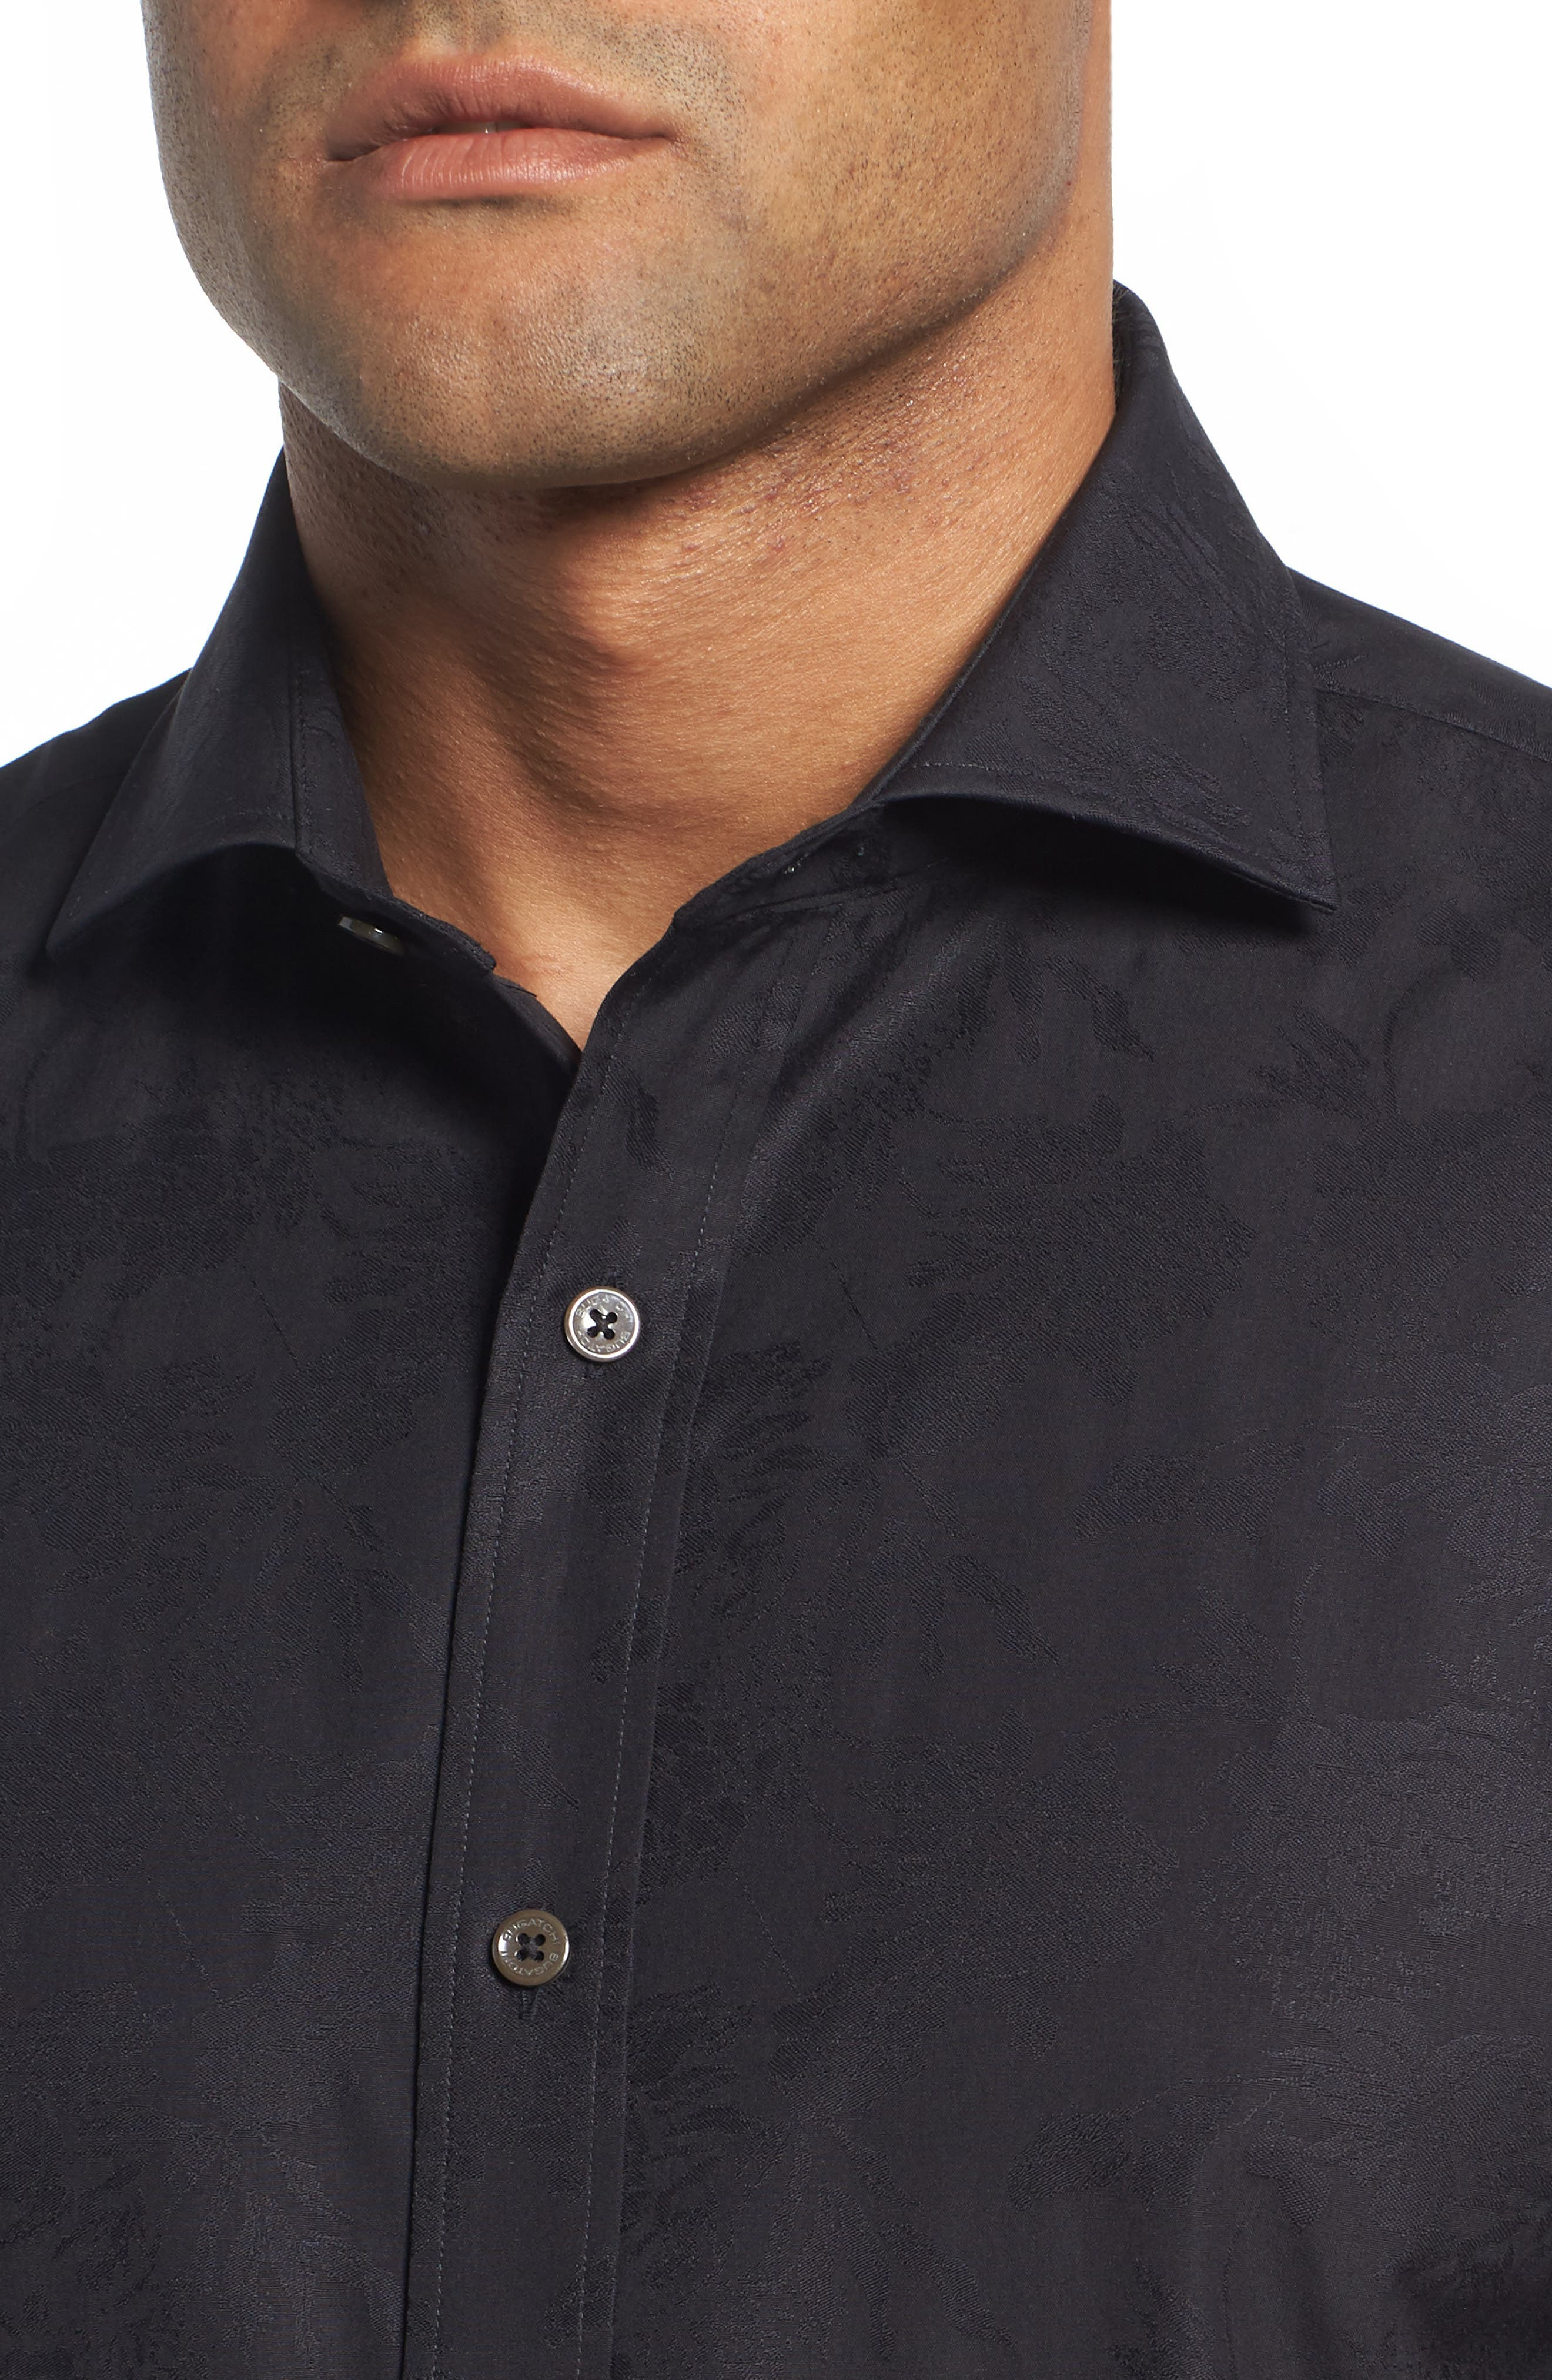 Classic Fit Tonal Jacquard Sport Shirt,                             Alternate thumbnail 2, color,                             Black